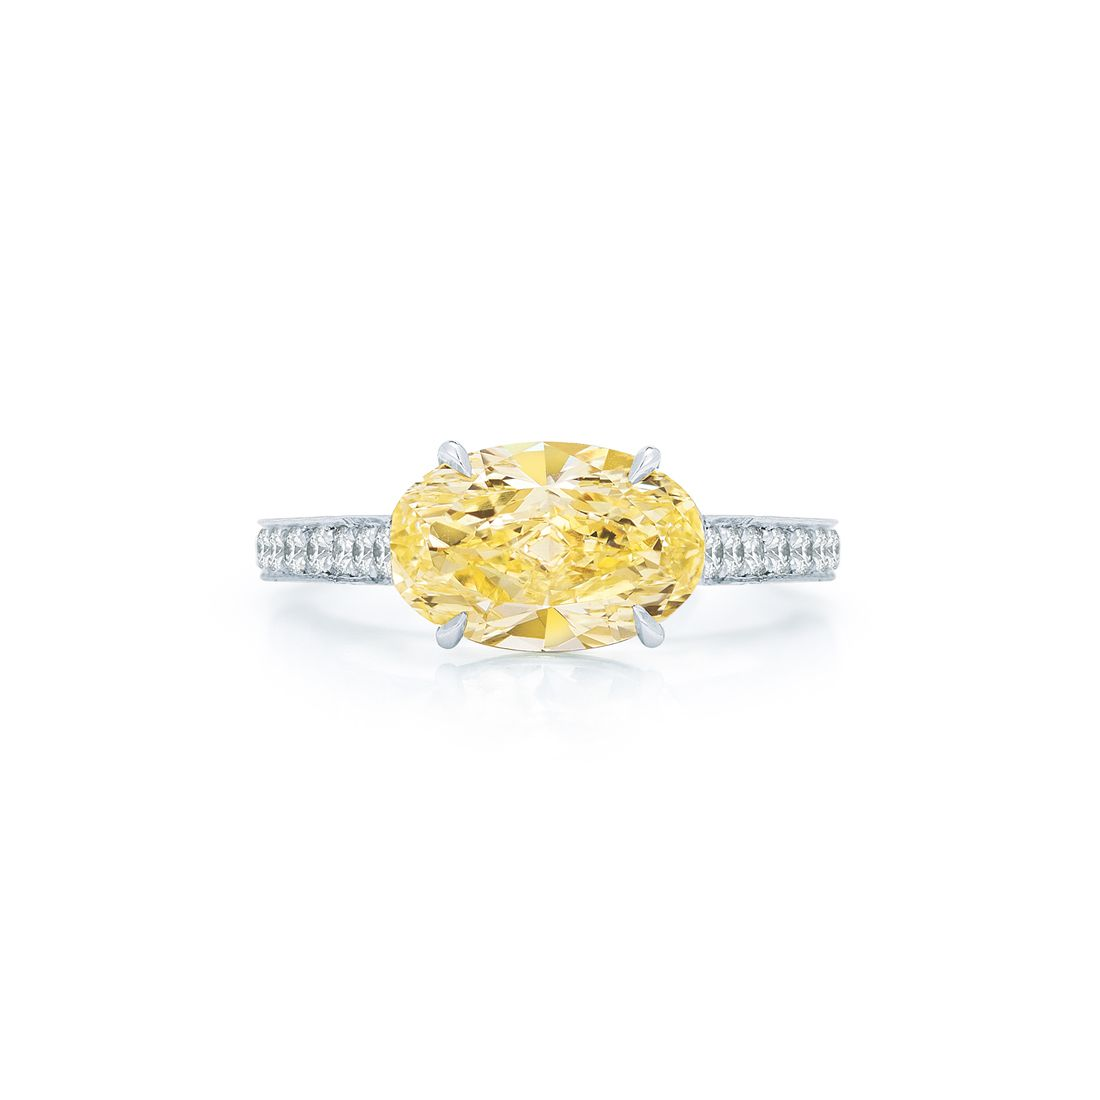 Oval yellow diamond ring with pave band